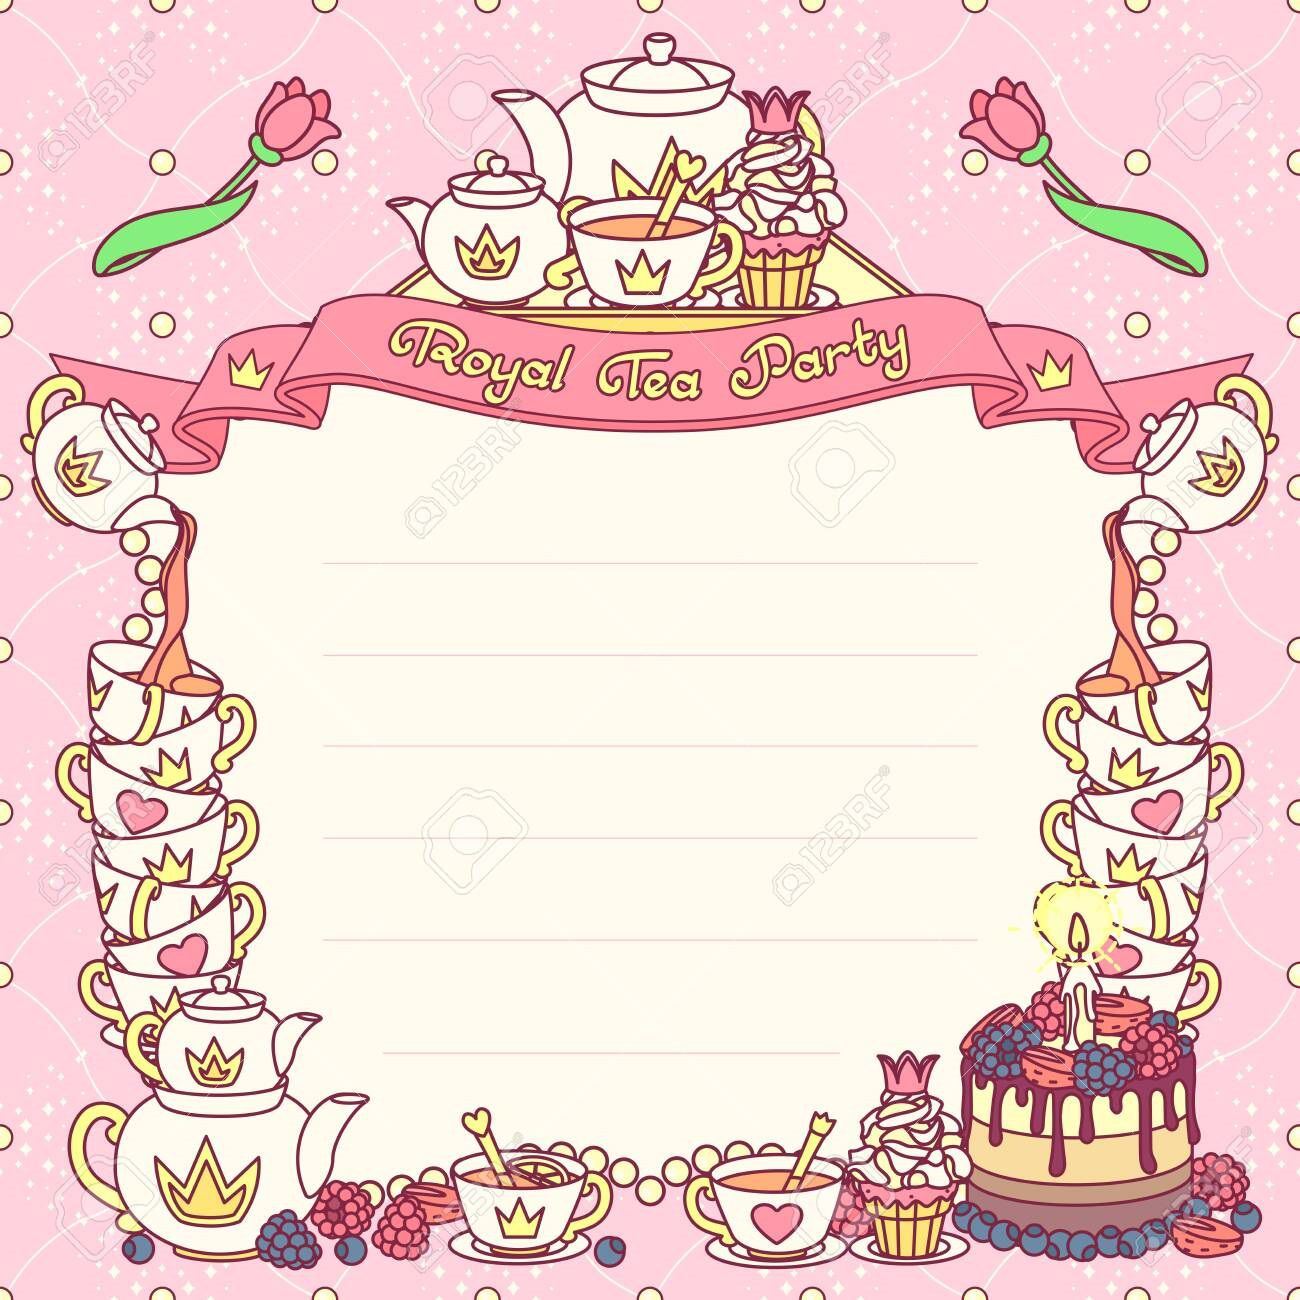 006 Sensational Tea Party Invitation Template Picture  Wording Vintage Free SampleFull